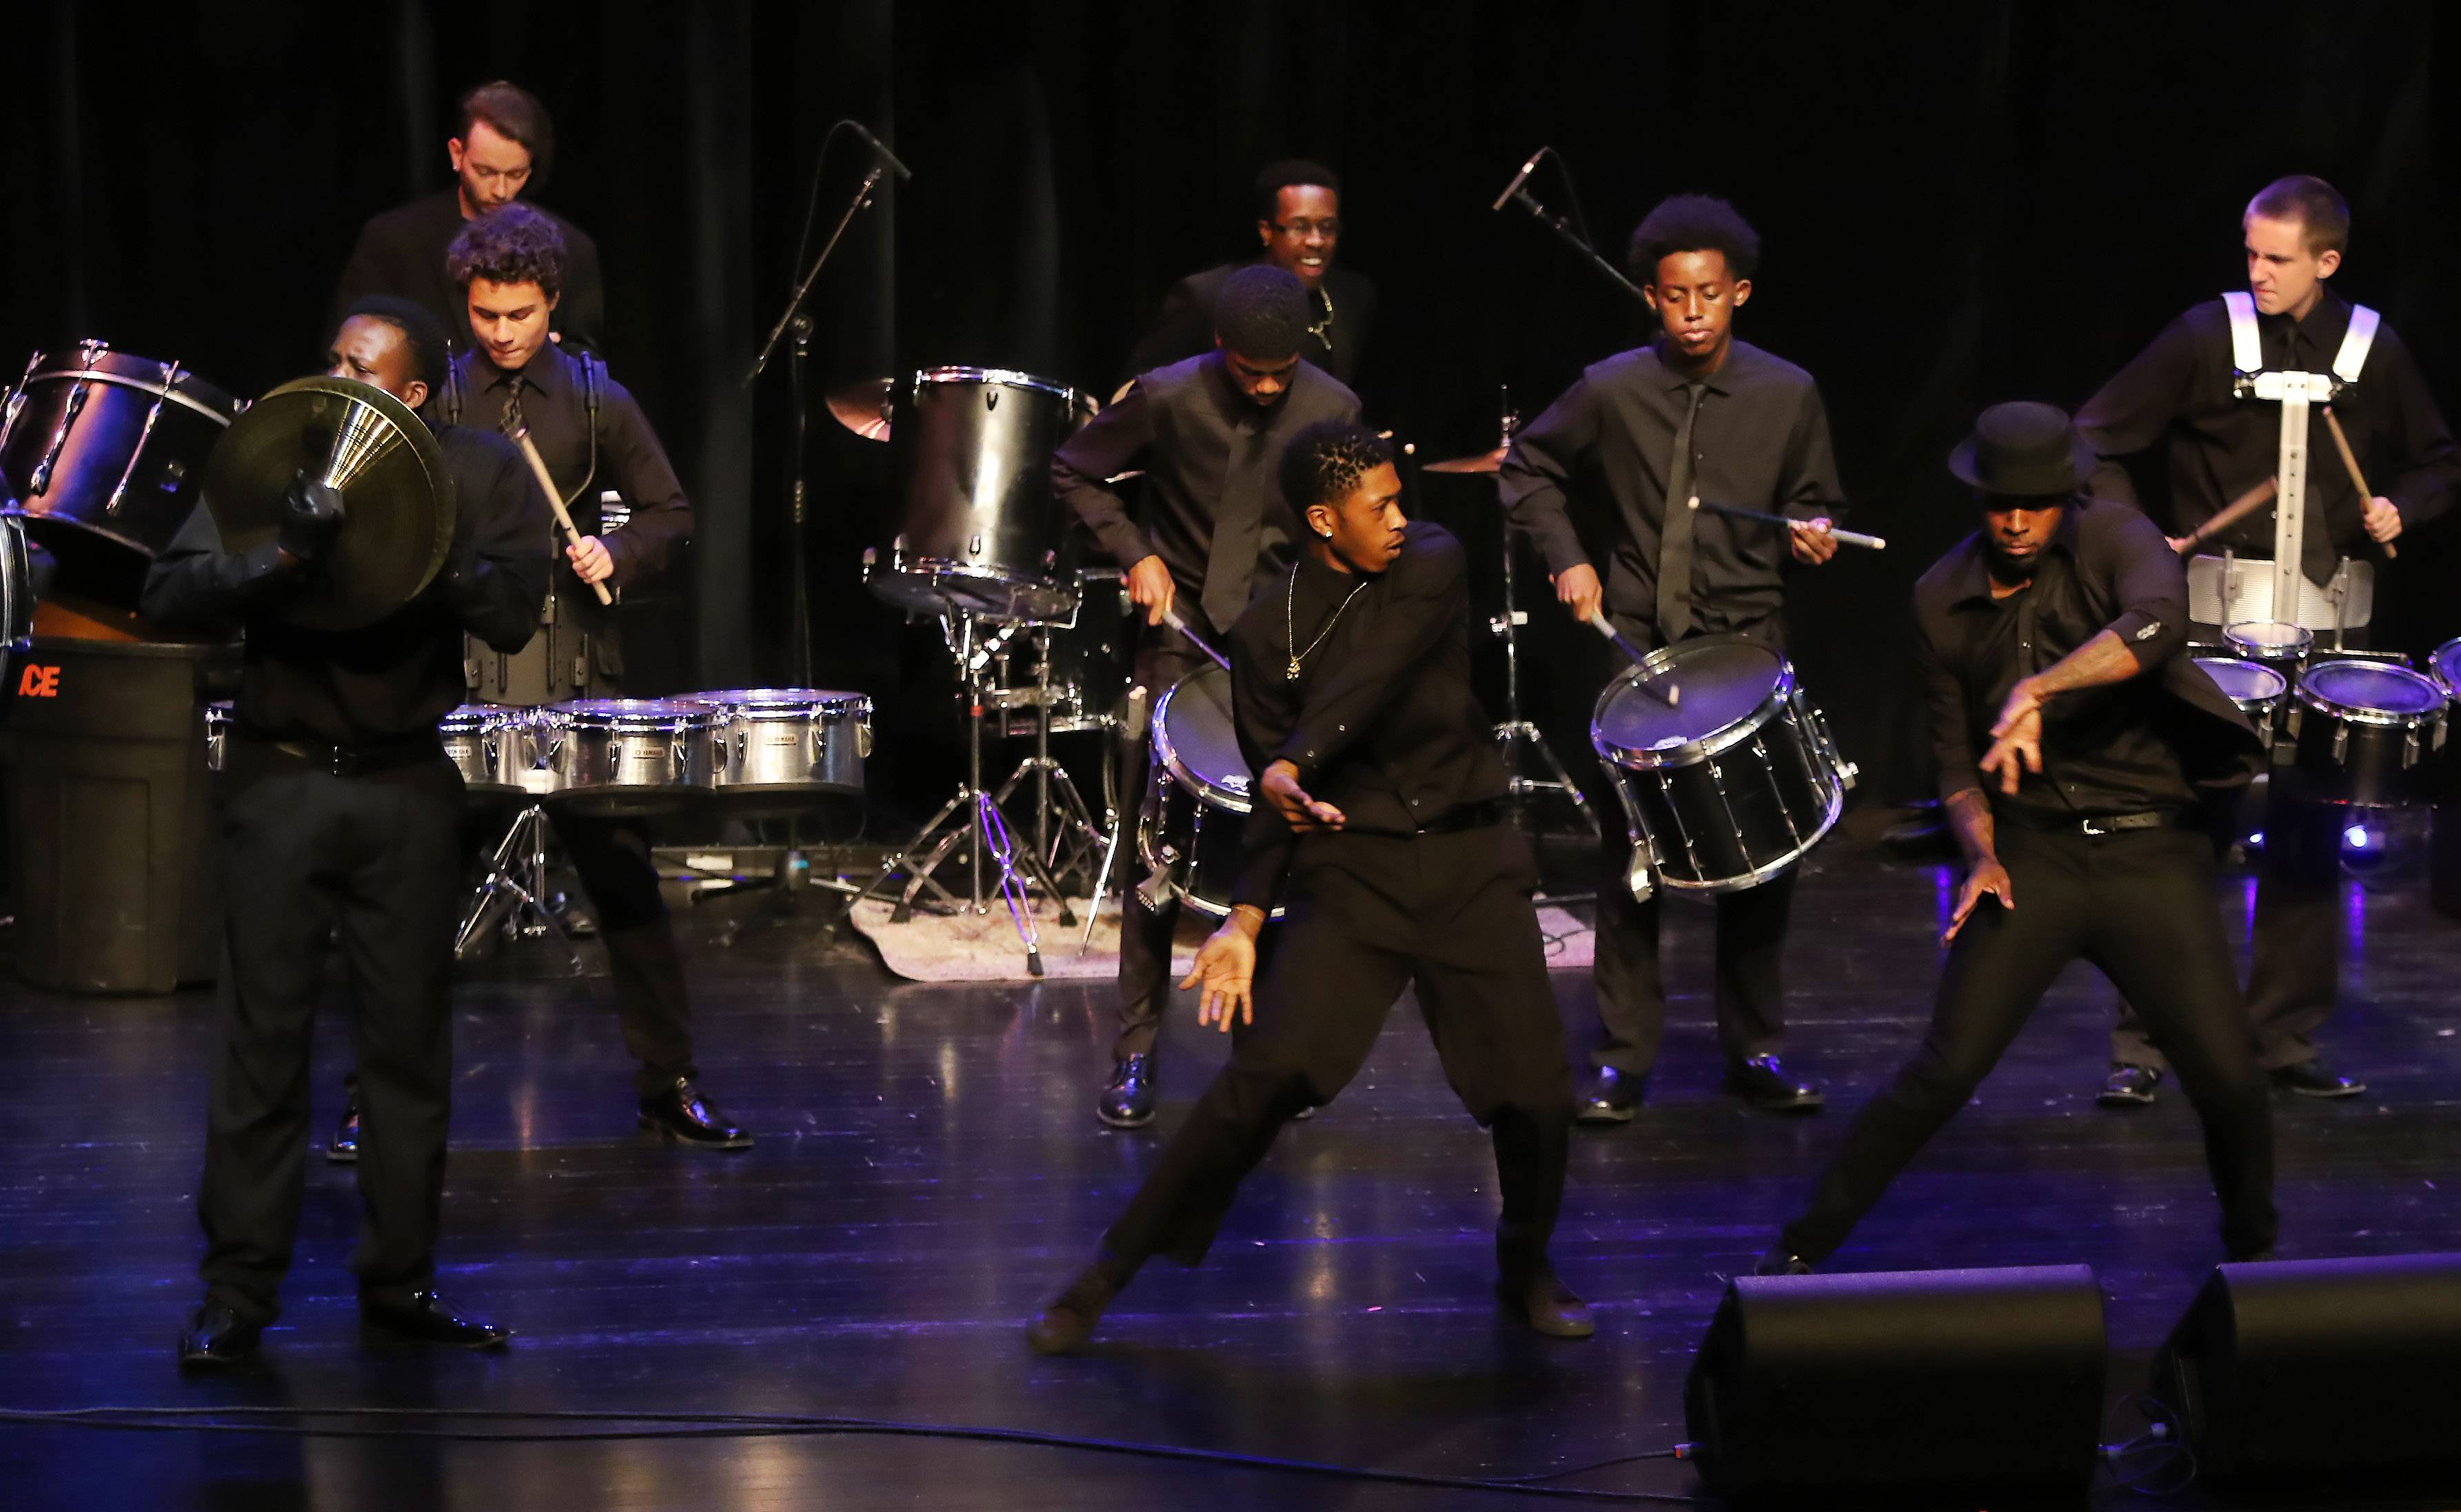 The Pack Drumline performs during the Suburban Chicago's Got Talent competition at the Prairie Center for the Arts in Schaumburg. The winner of the final contest wins a STARter kit worth $5,000 with a chance to be an opening act at the Arcada Theatre.